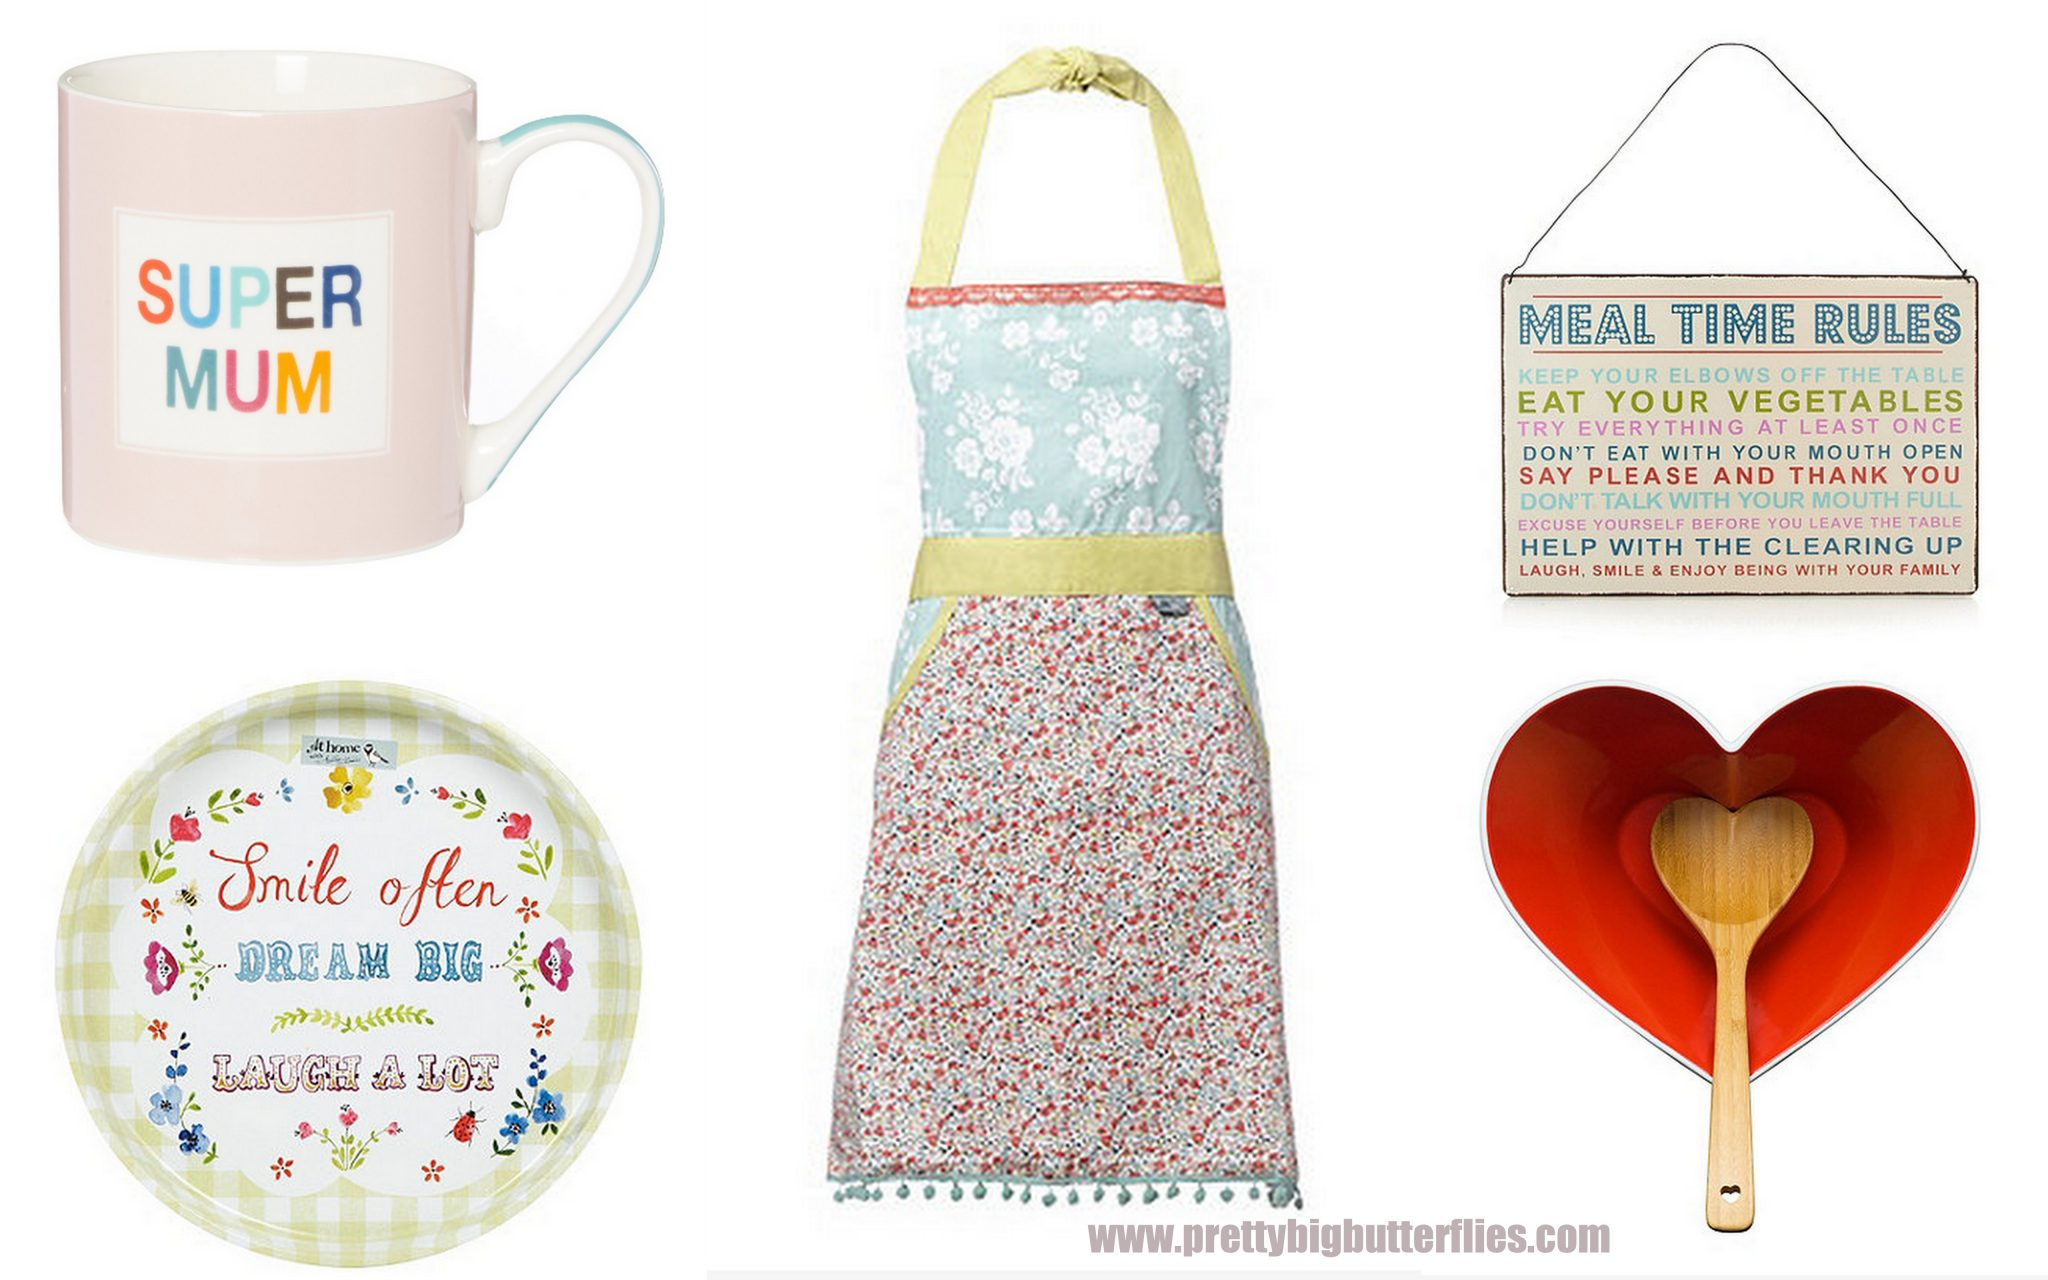 Mothers Day Inspiration From Debenhams - For The Mum Who Is The Boss Of the Kitchen.